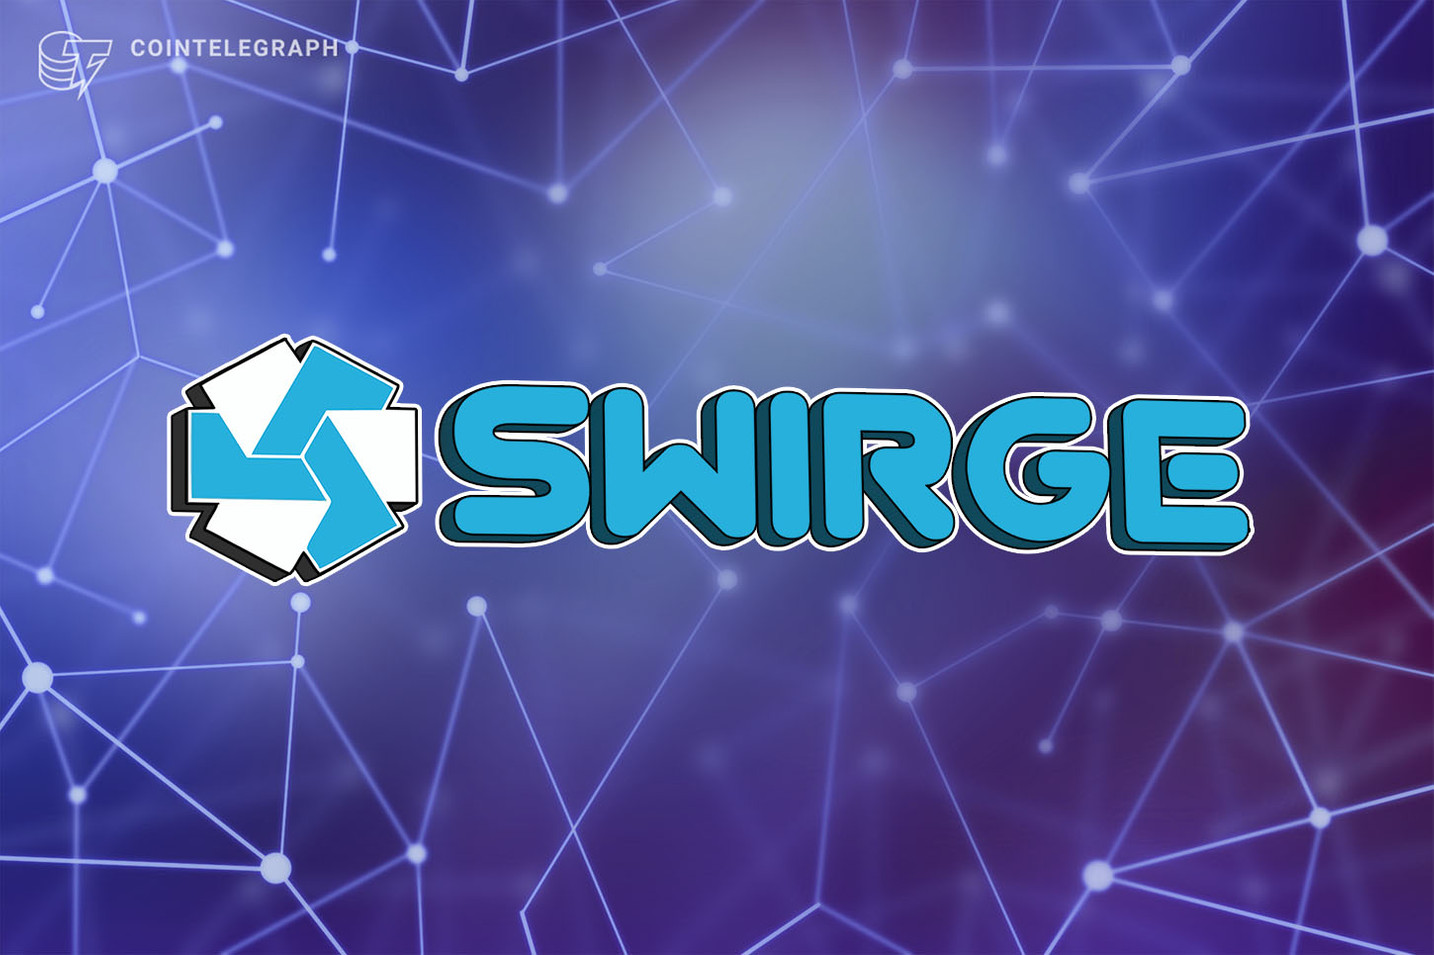 Introducing the Swirge Finance Token: A fully decentralized token